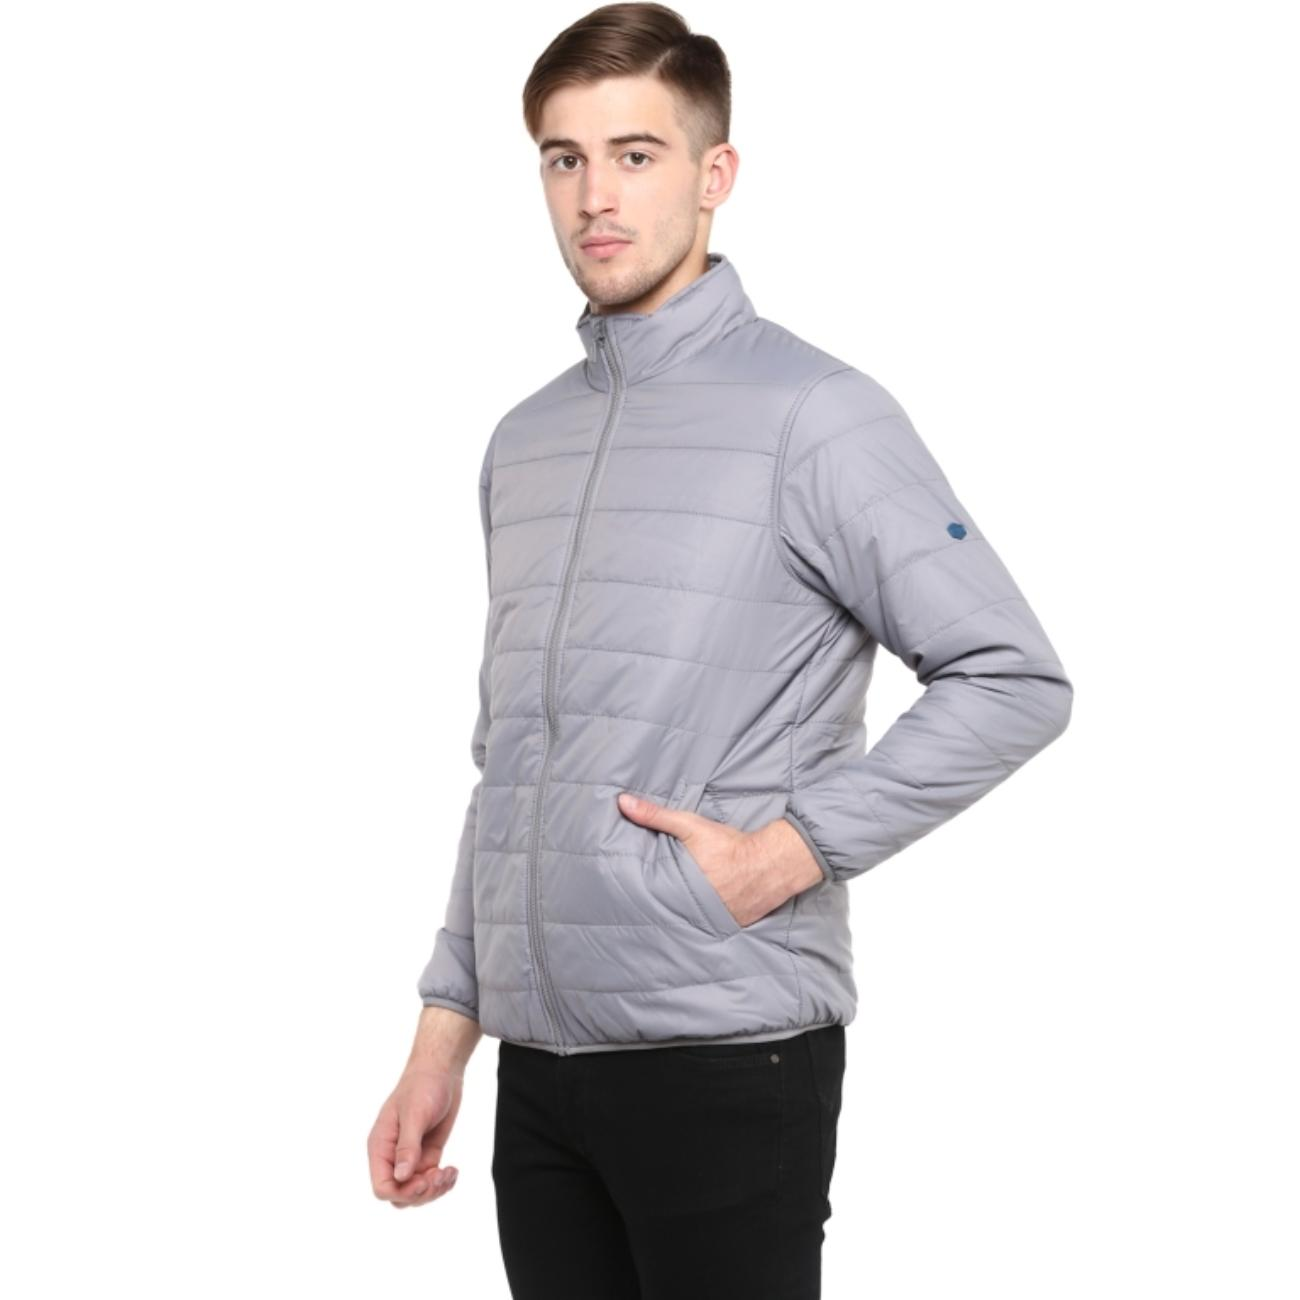 Light Gray Jacket Online at Red Chief